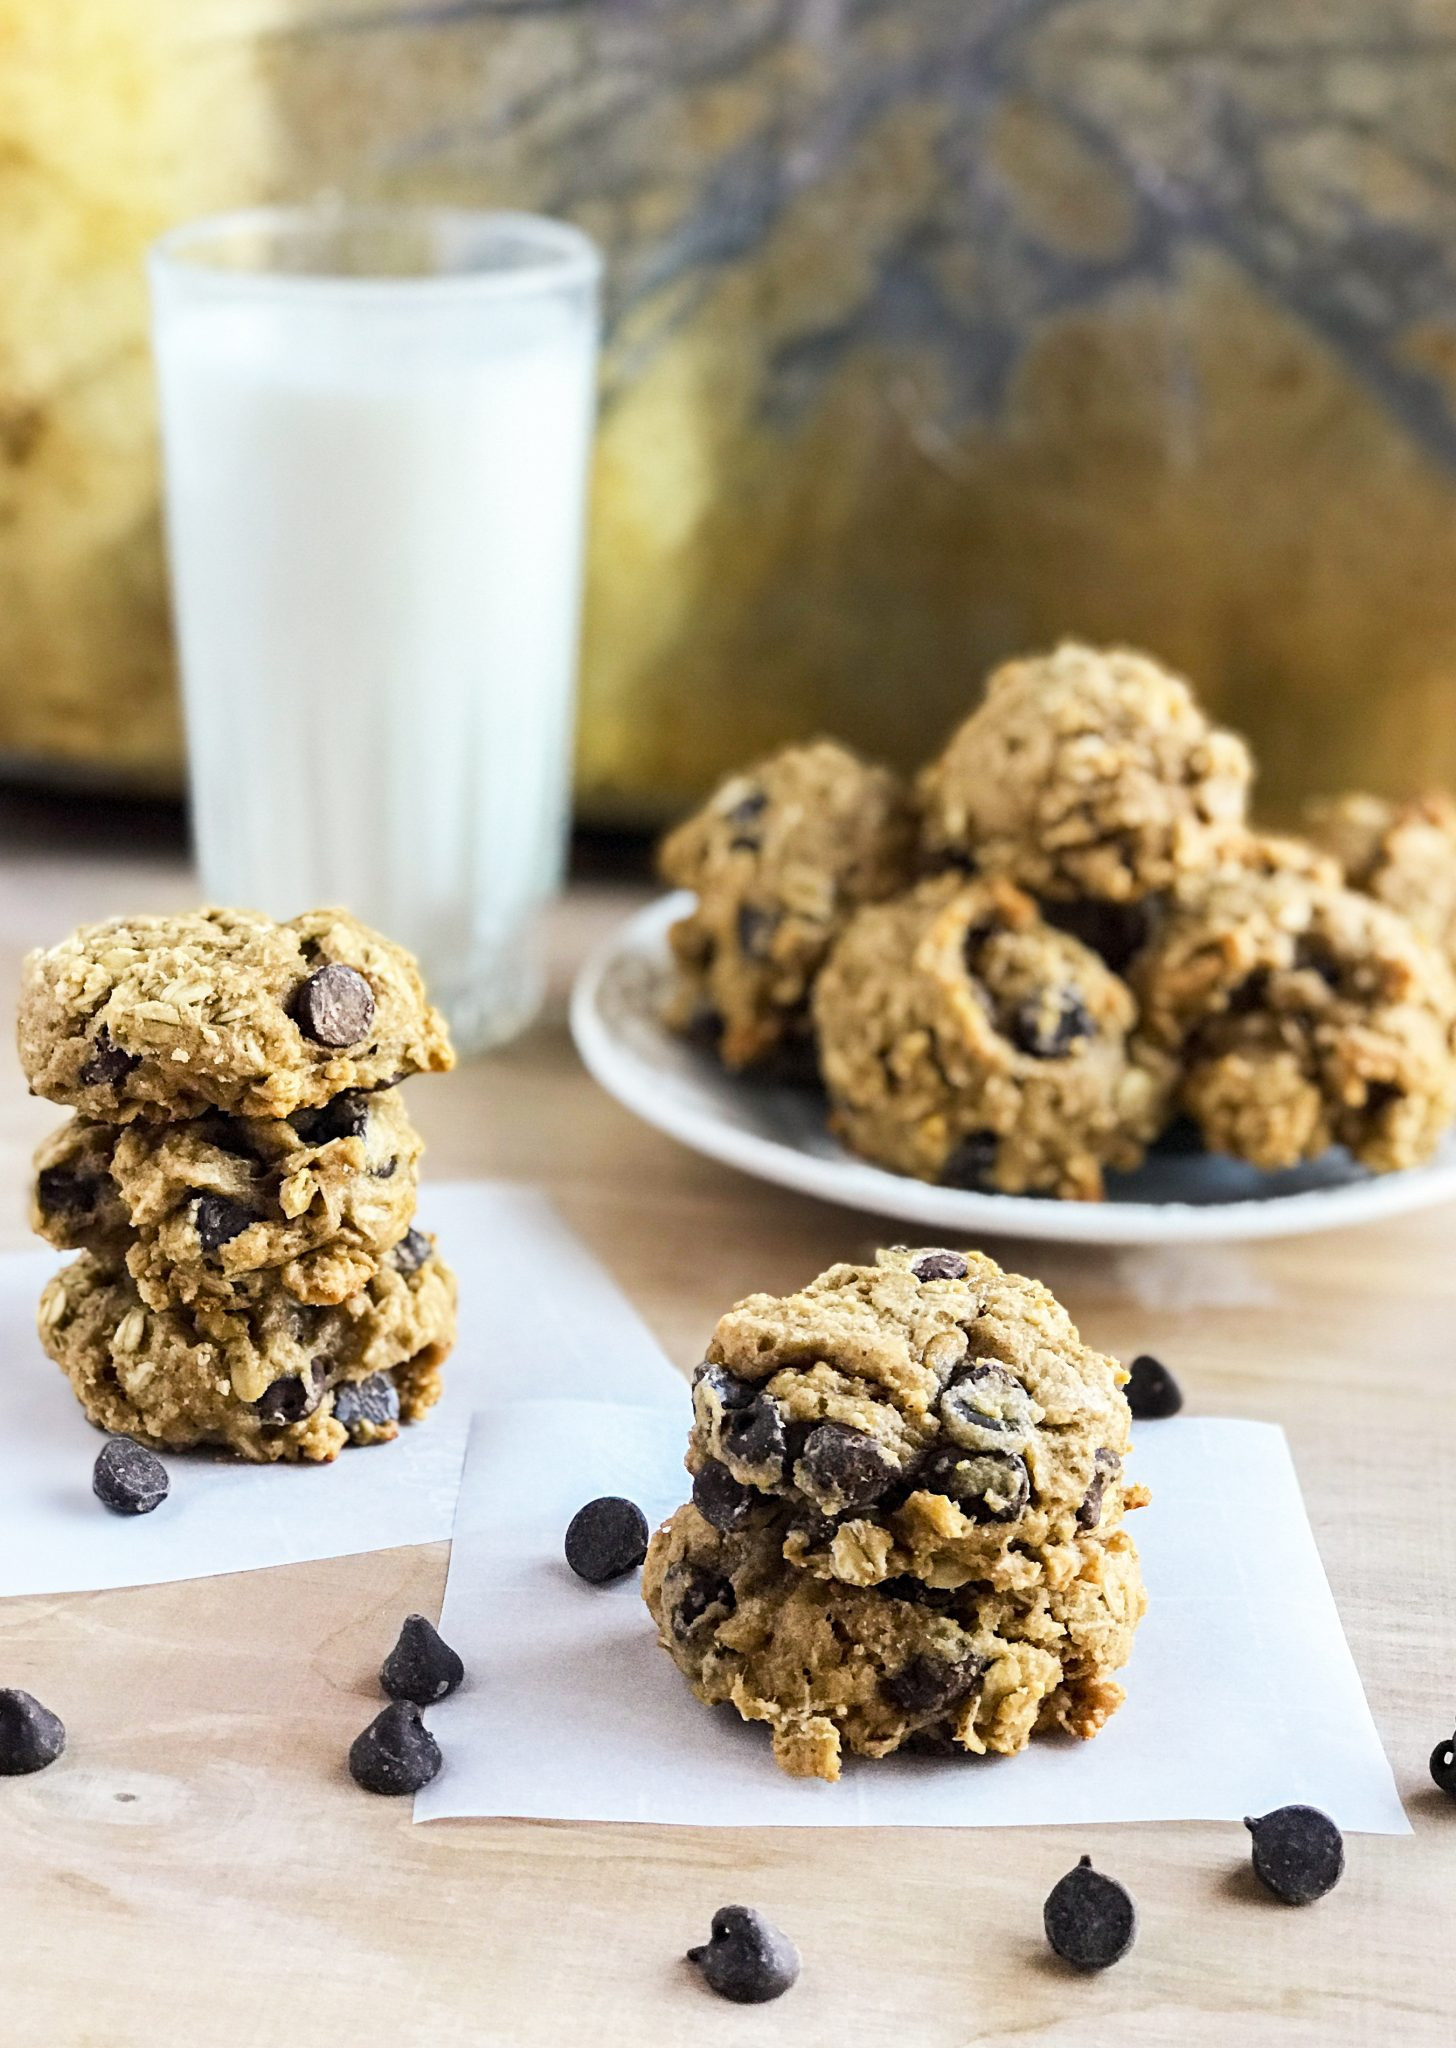 Healthy Chocolate Peanut Butter Cookies  Healthy Peanut Butter Chocolate Chip Cookies 31 Daily